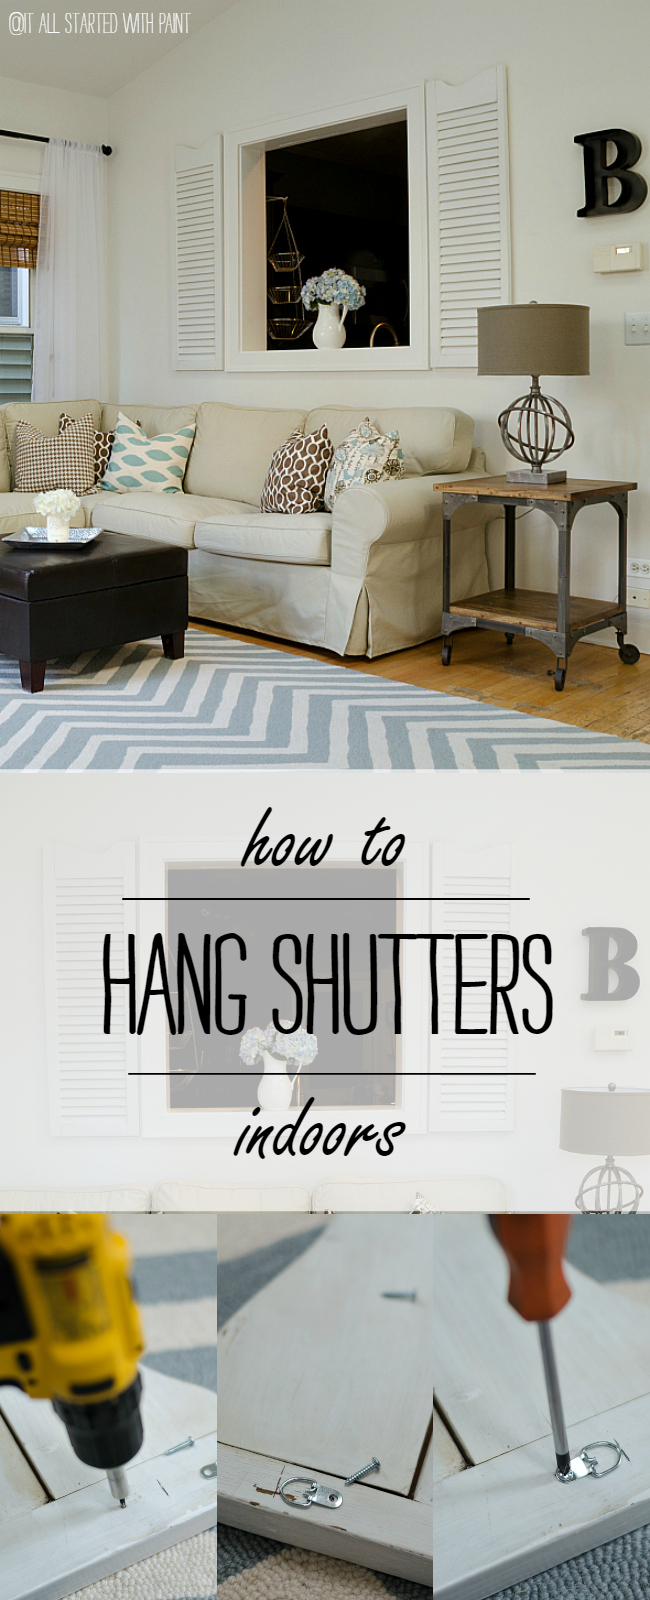 How To Hang Shutters Indoors